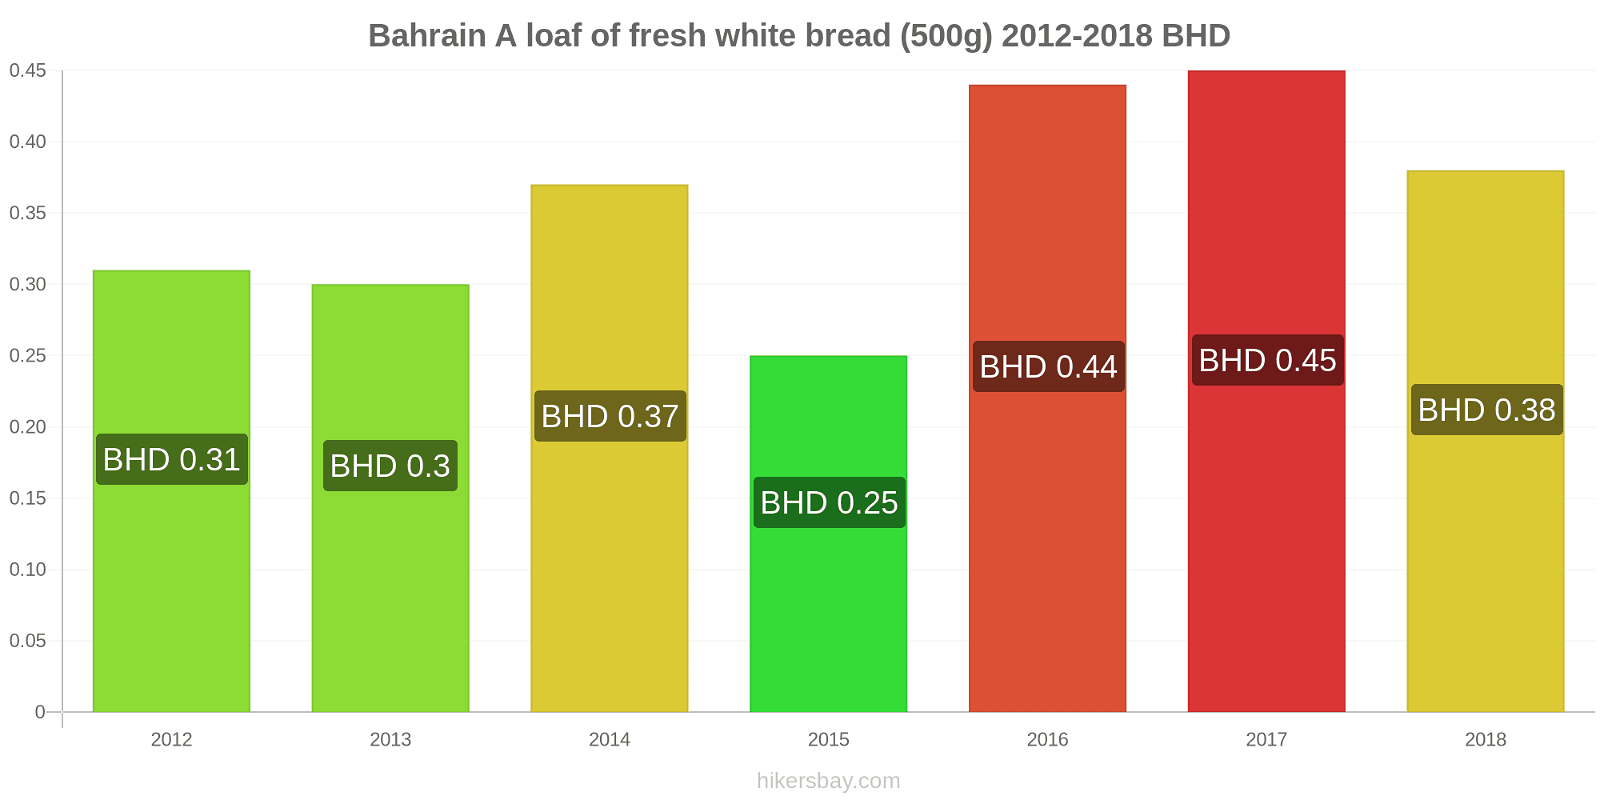 Bahrain price changes A loaf of fresh white bread (500g) hikersbay.com